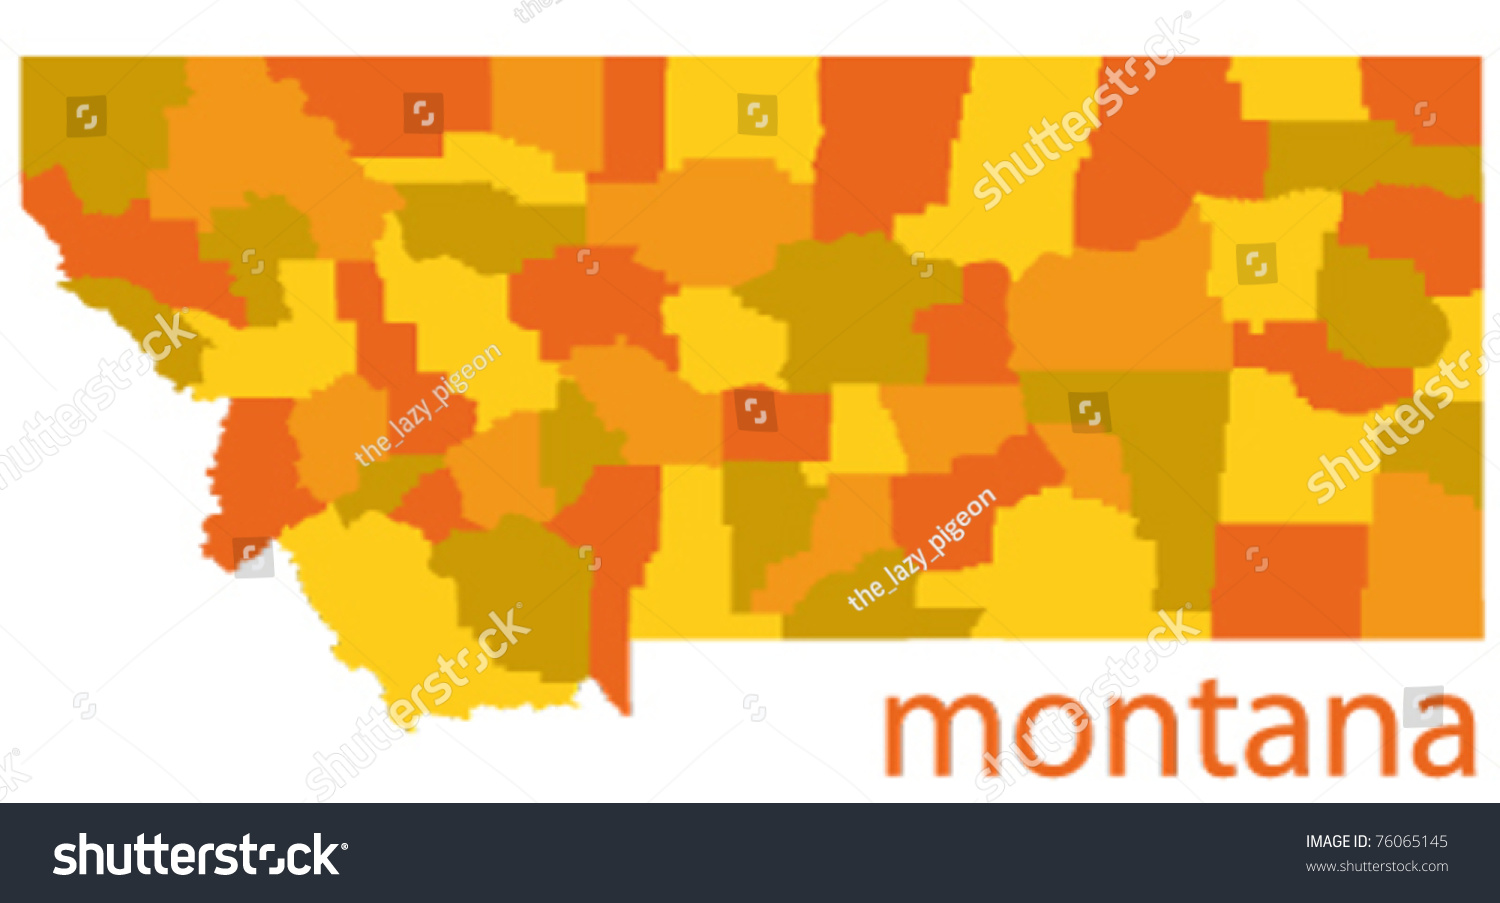 Detailed Map Of Montana StateUsa Stock Vector Illustration - Montana state usa map